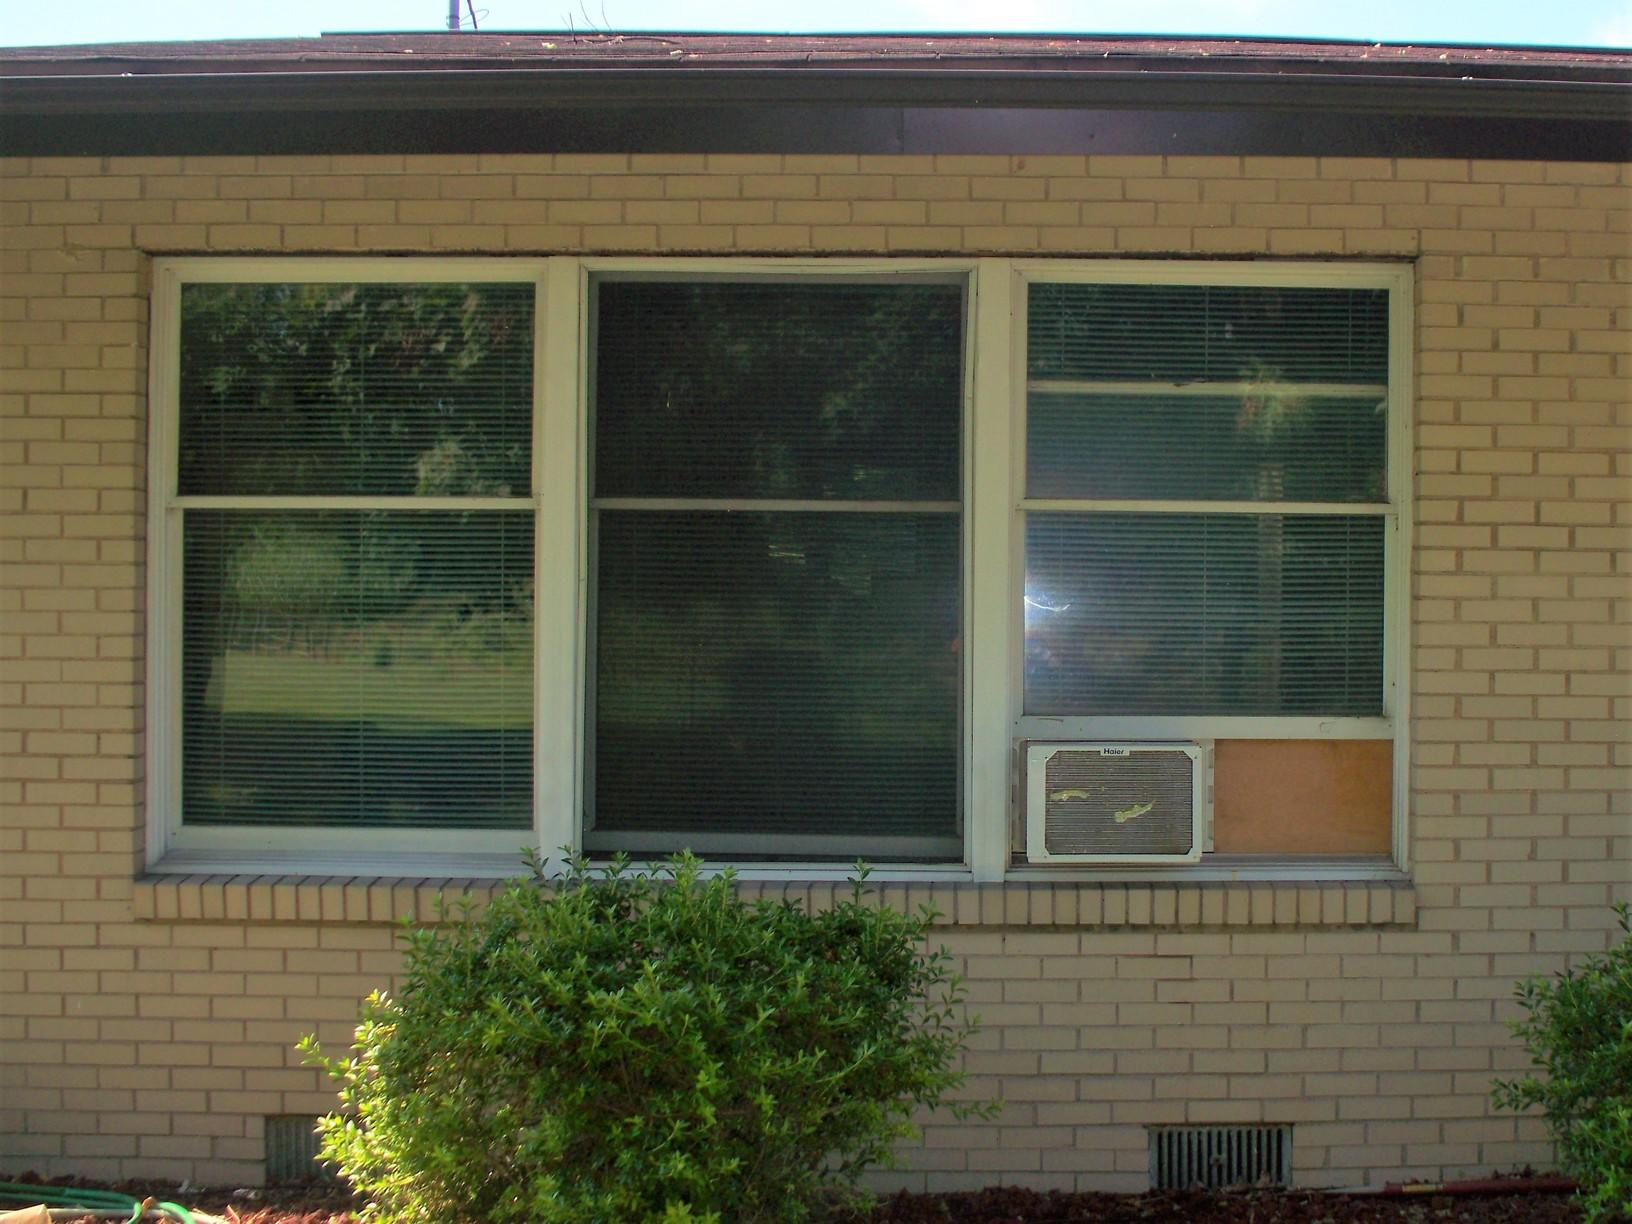 Incredible difference seen with window replacement in Vanderbilt, PA! - Before Photo